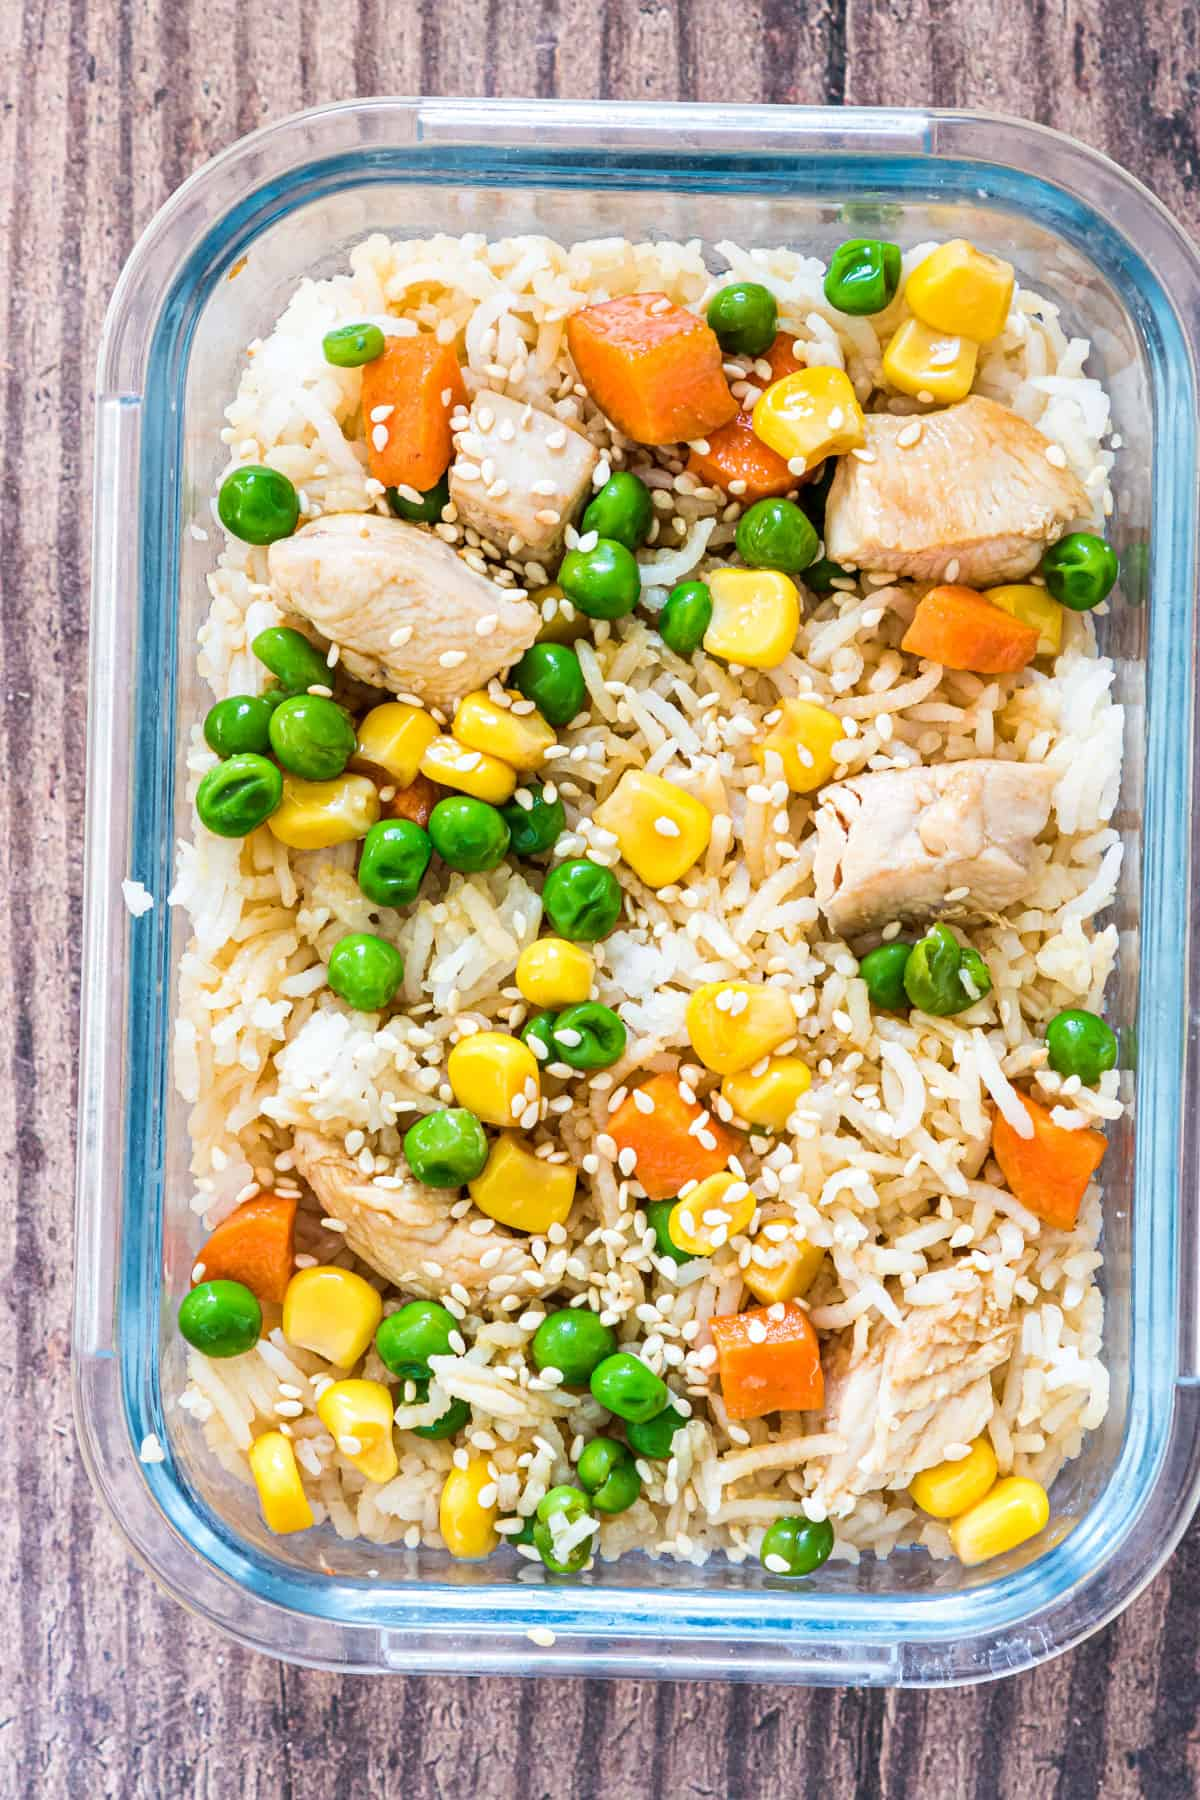 a portion of instant pot chicken fried rice in a glass meal storage container